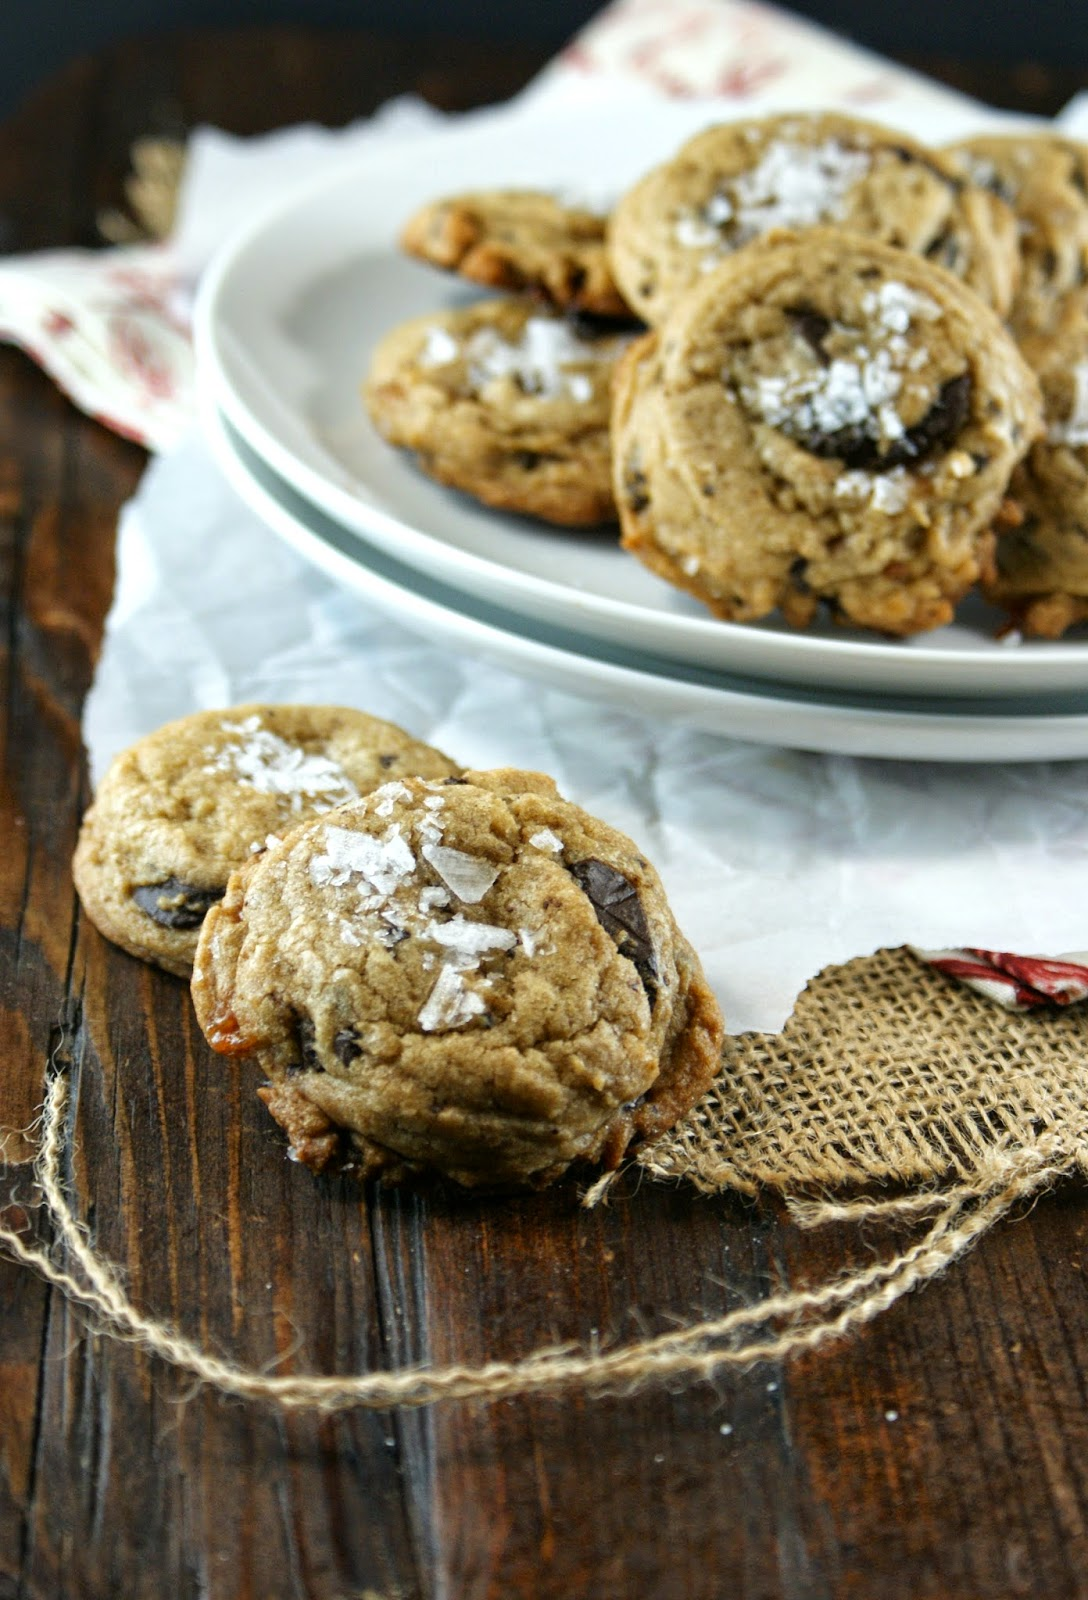 Authentic Suburban Gourmet: Salted Caramel and Chocolate Chunk Cookies